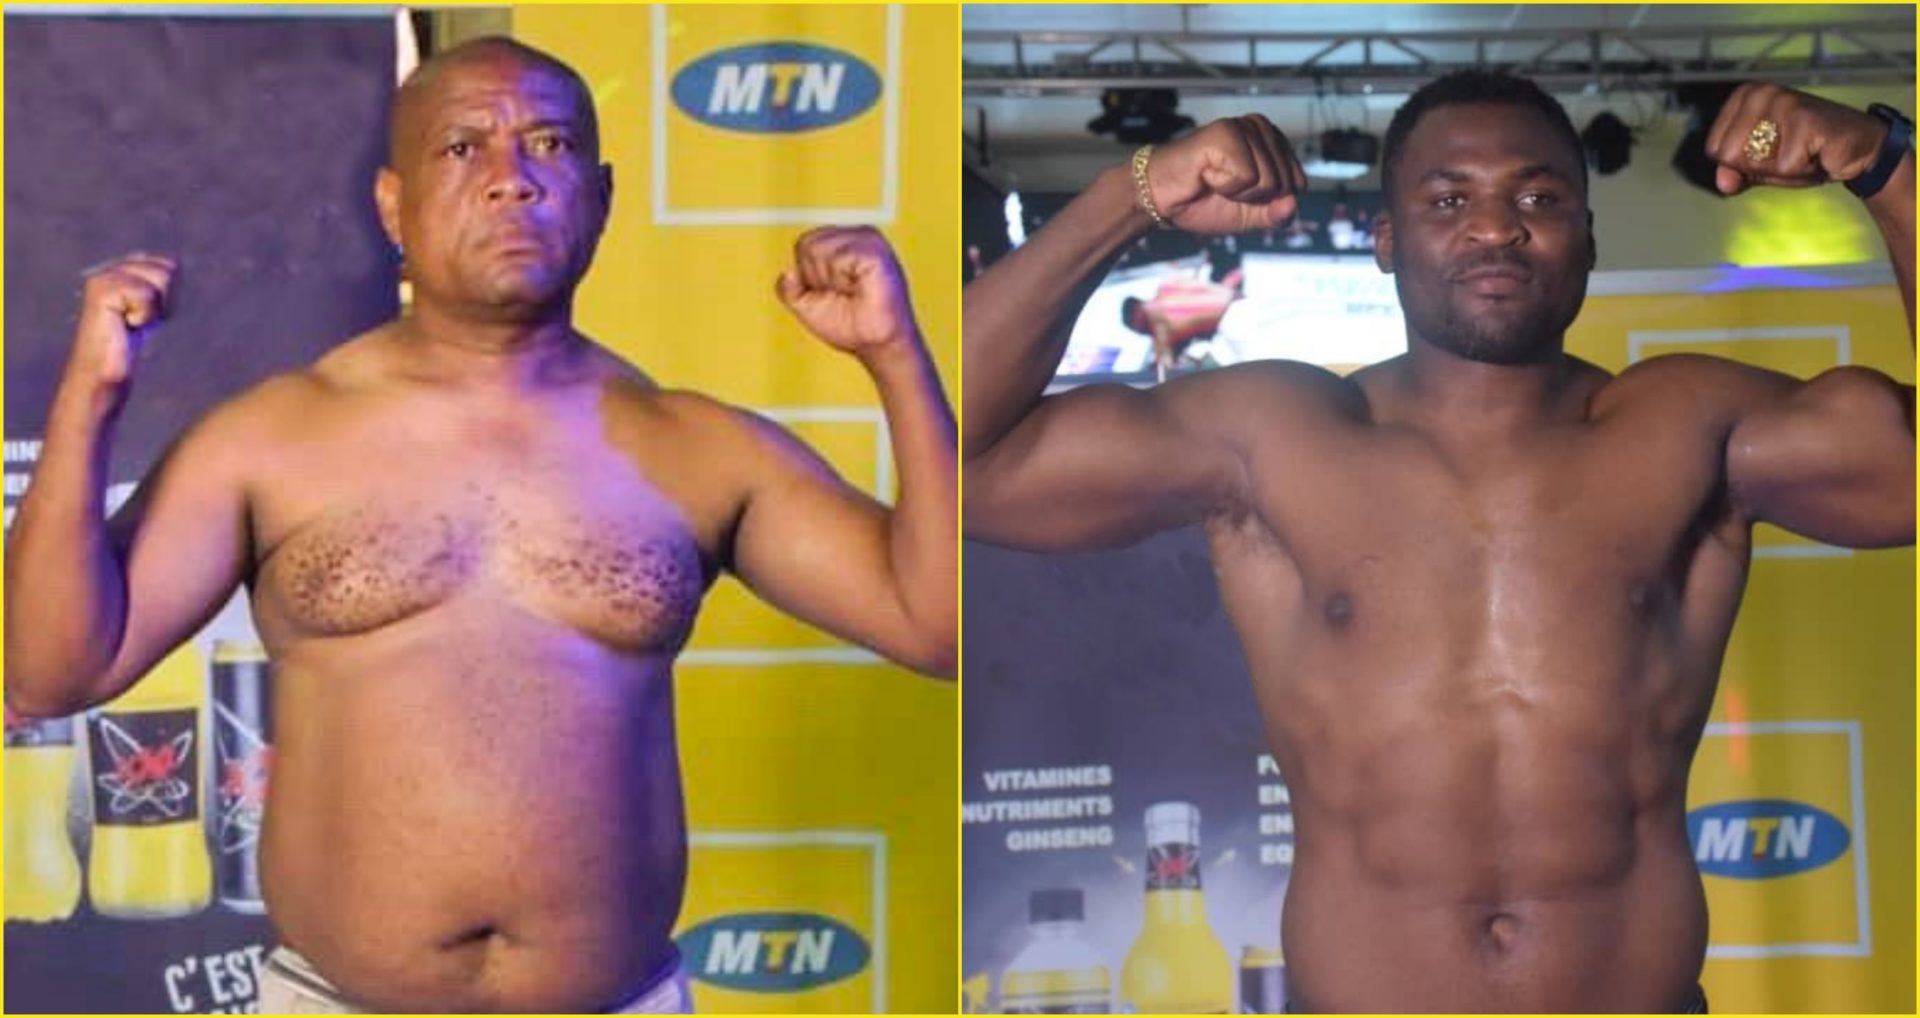 Francis Ngannou beats stand-up comedian Hoga in a charity match - Francis Ngannou